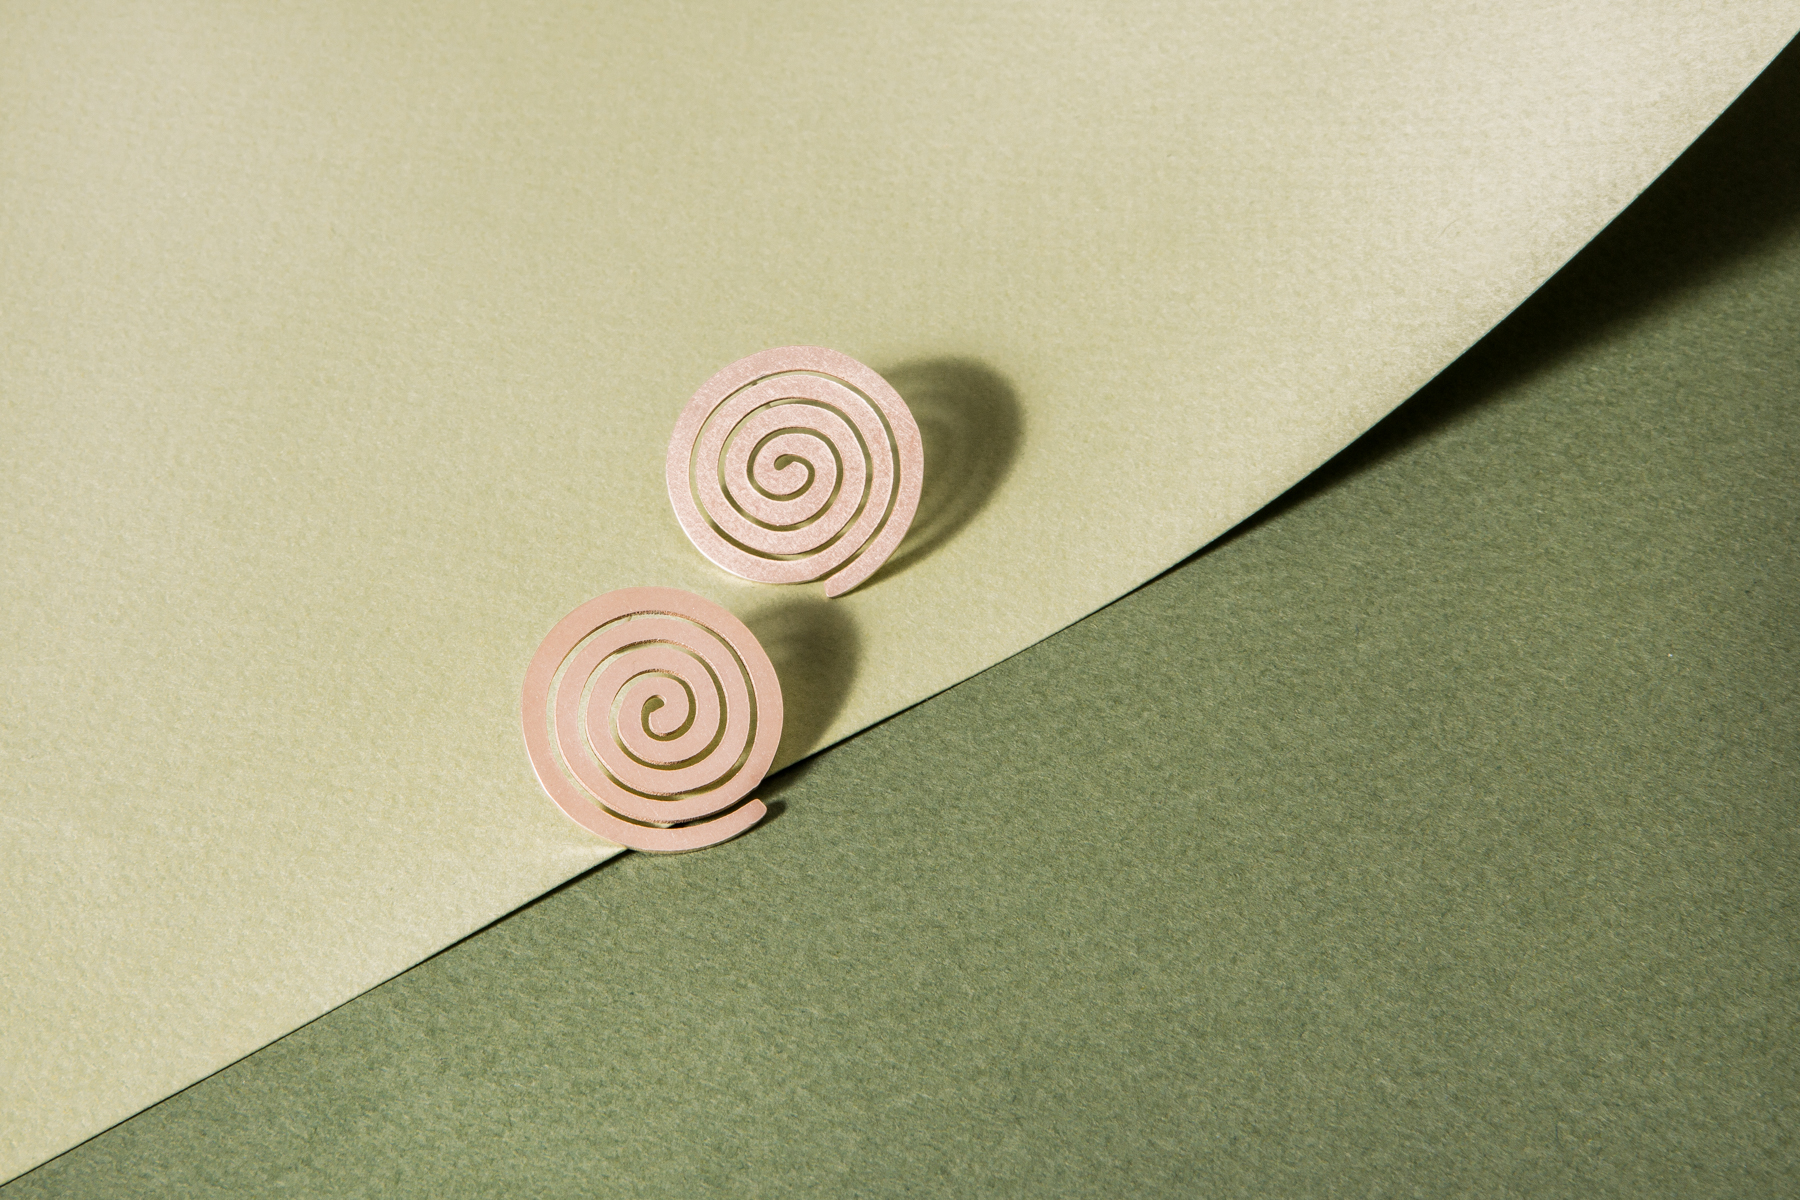 Cities in Dust Small Spiral Earrings- $56